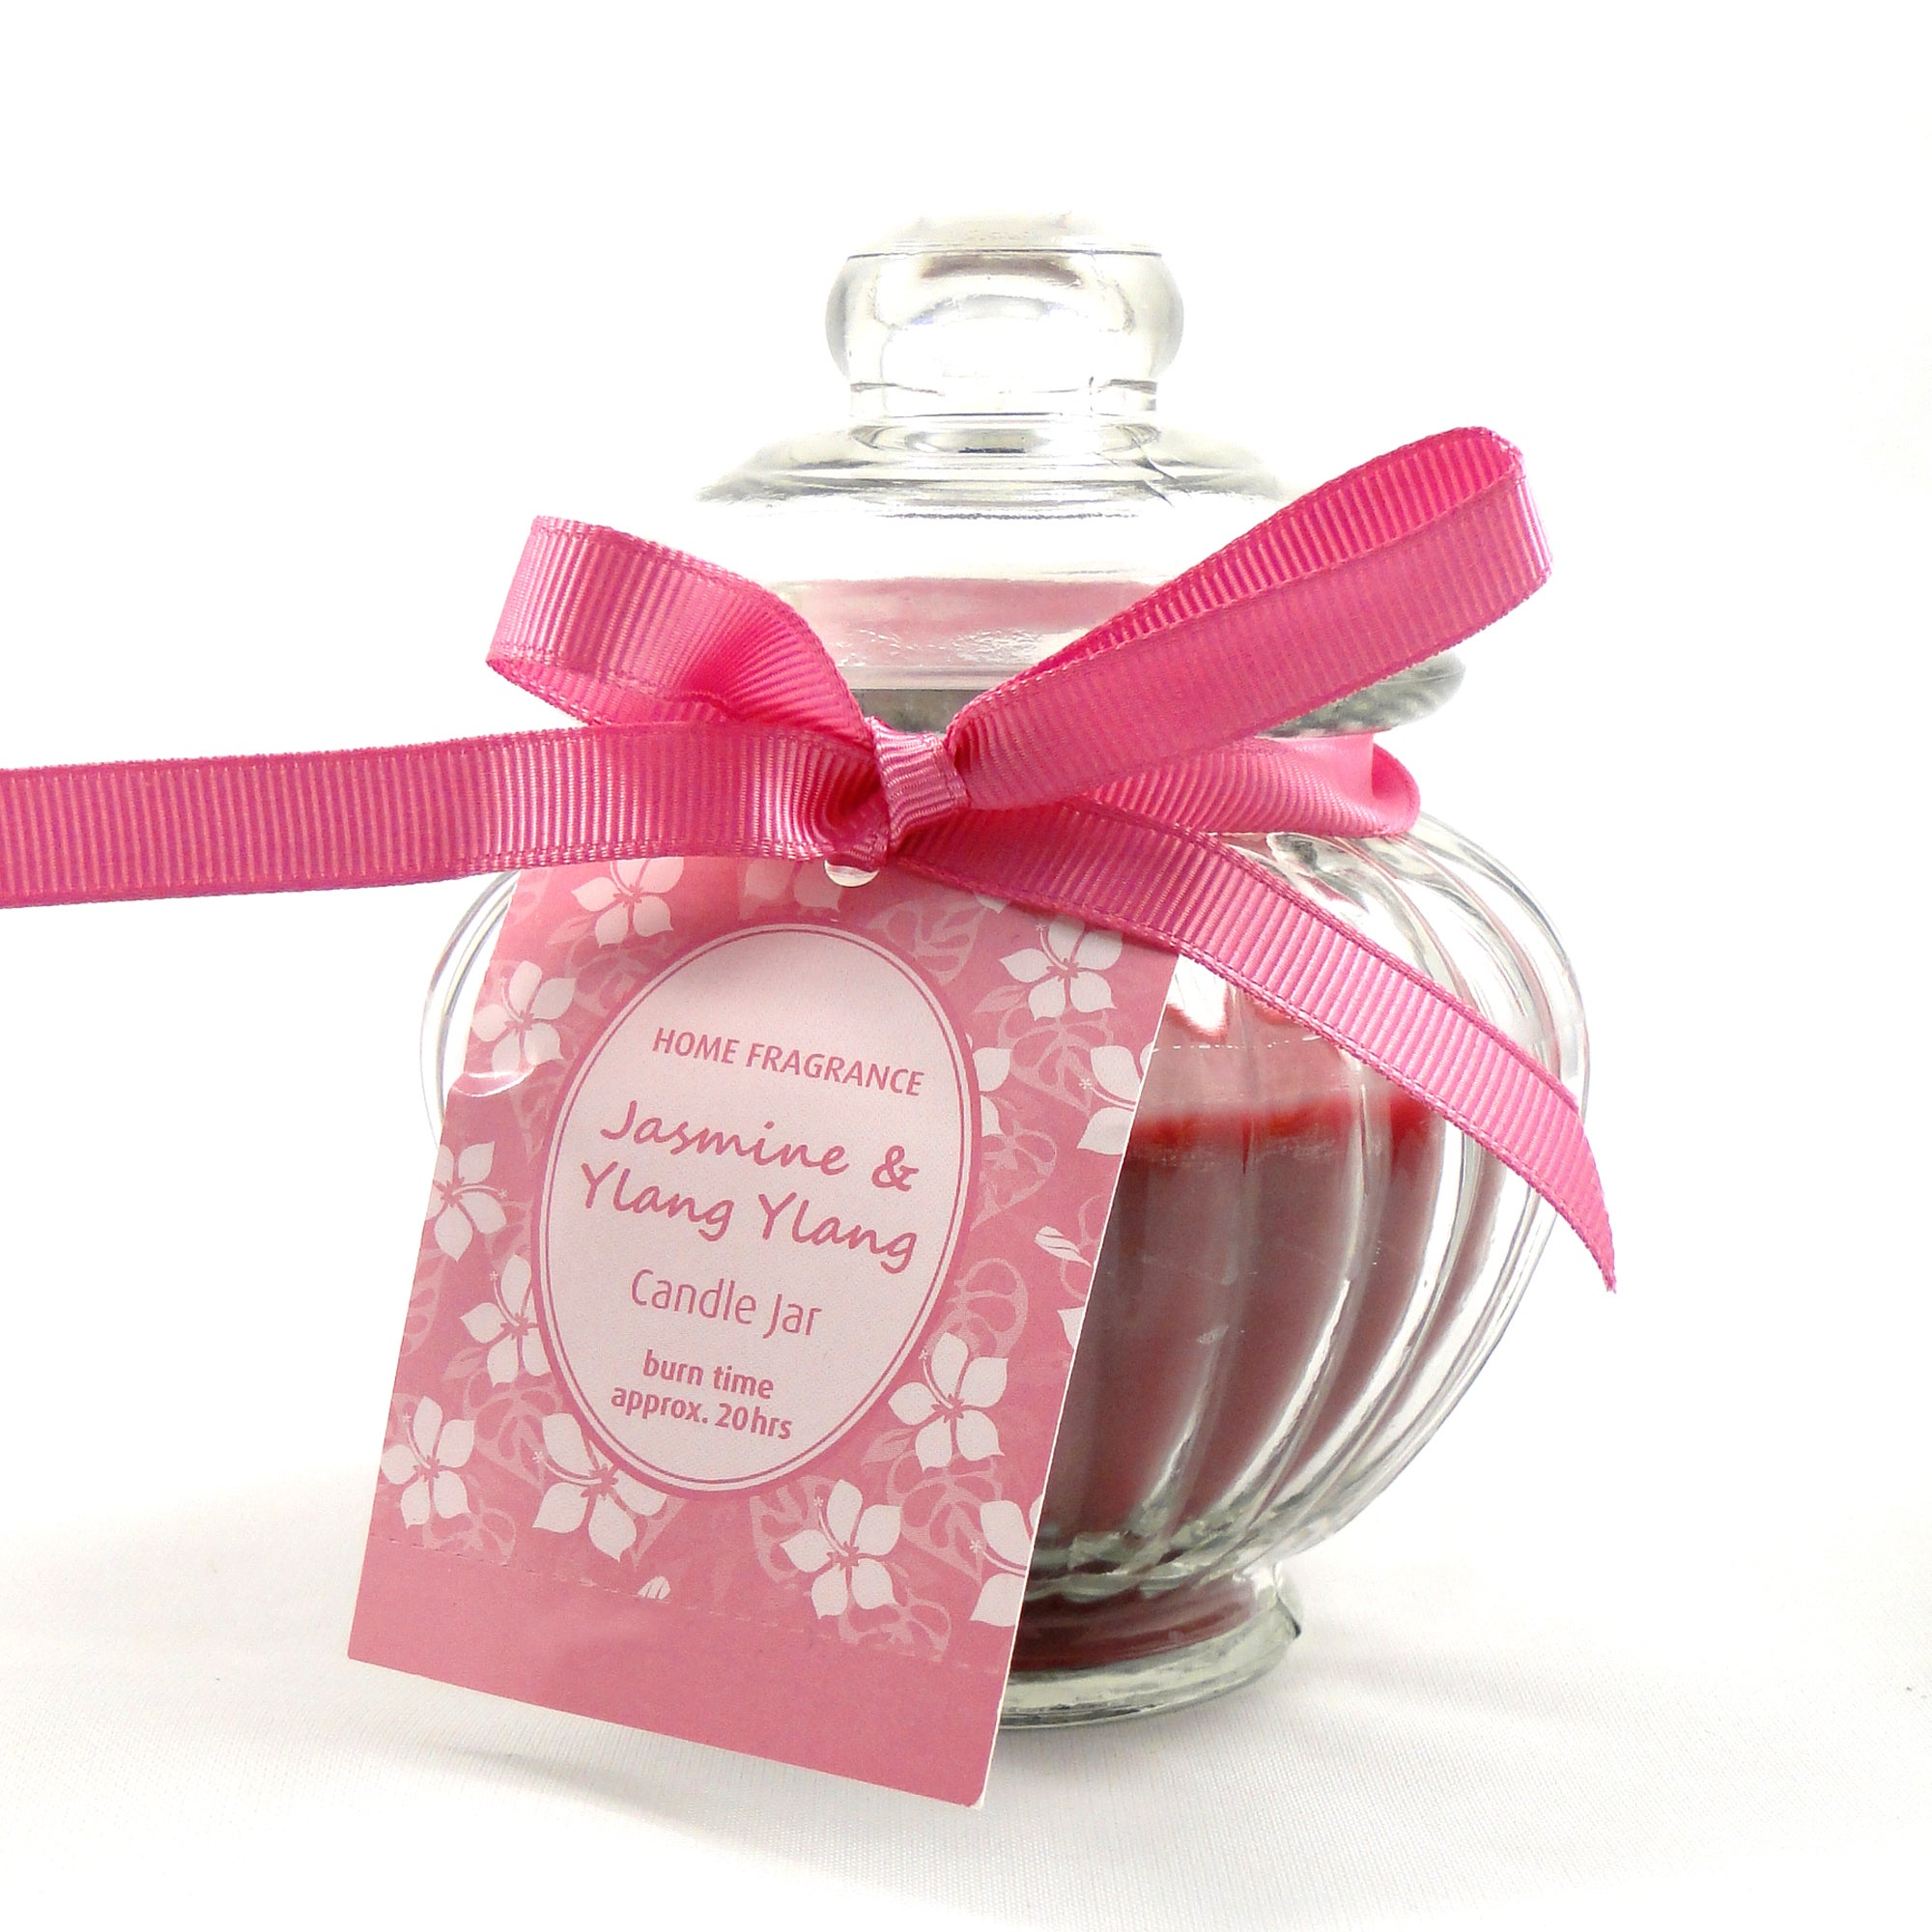 Home Fragrance Jasmine and Ylang Ylang Wax Filled Jar